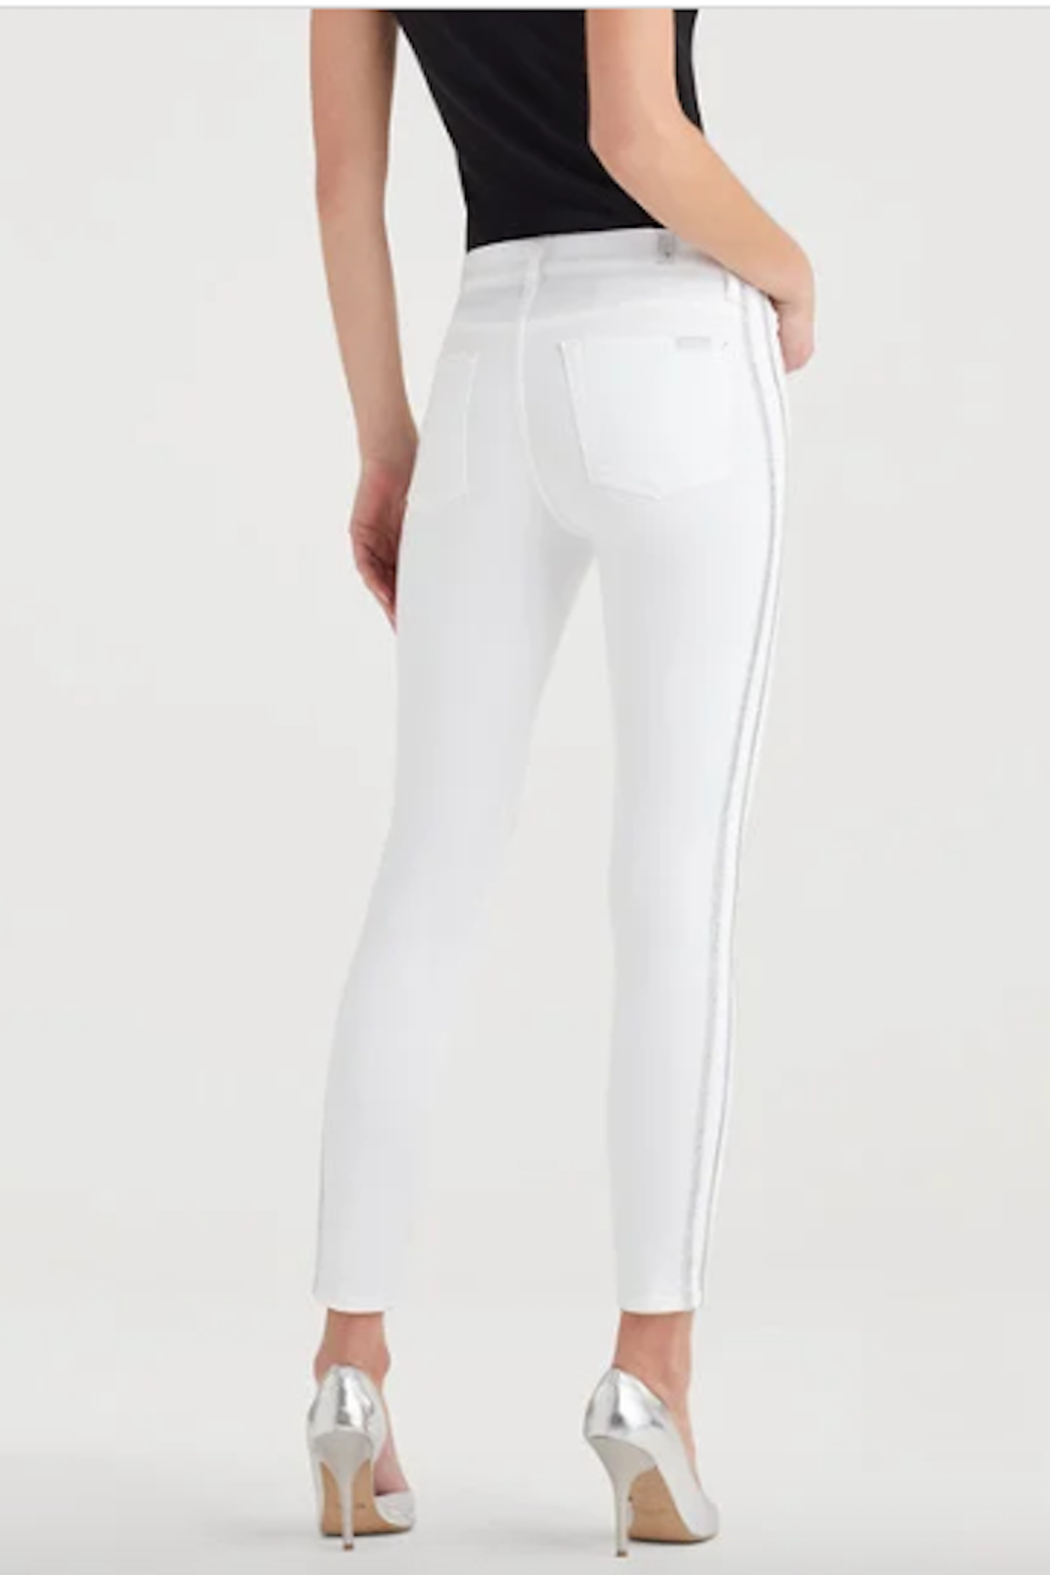 7 For all Mankind High Waist Winter White Fashion Skinny Jean - Front Full Image